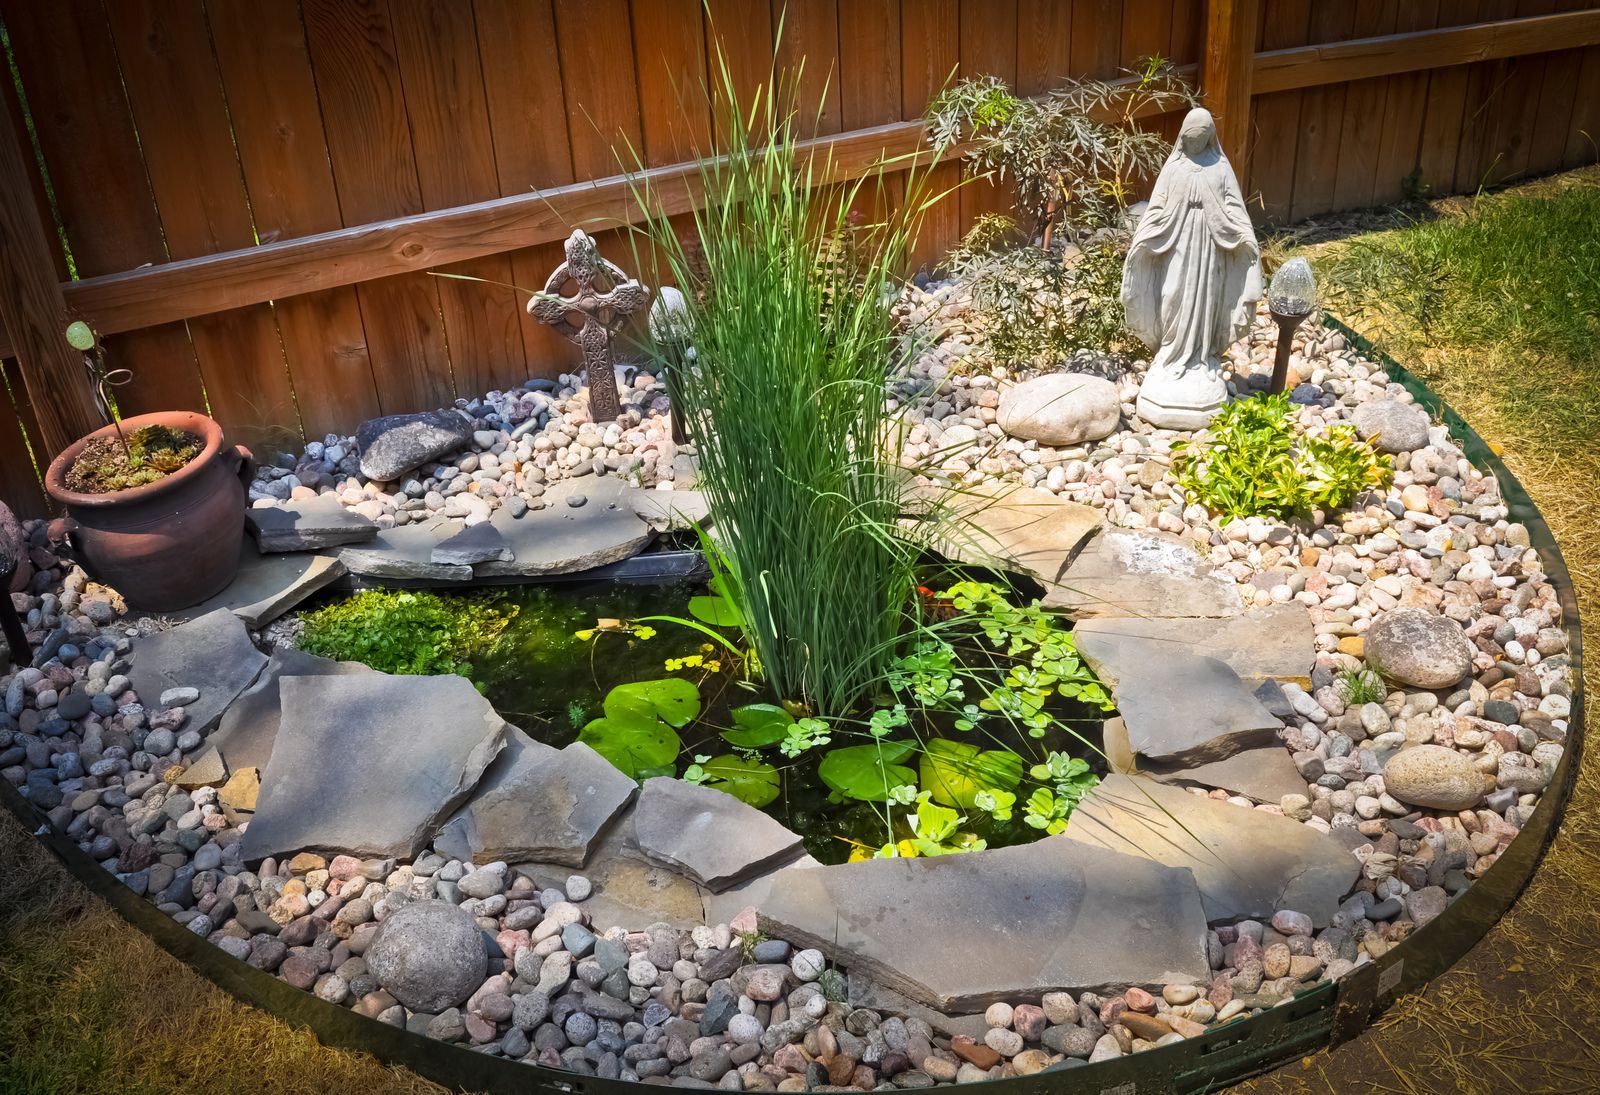 Pat d pond gardens and water features if i lived in a house with a yard of my own i would love a little spot with a tiny pond workwithnaturefo